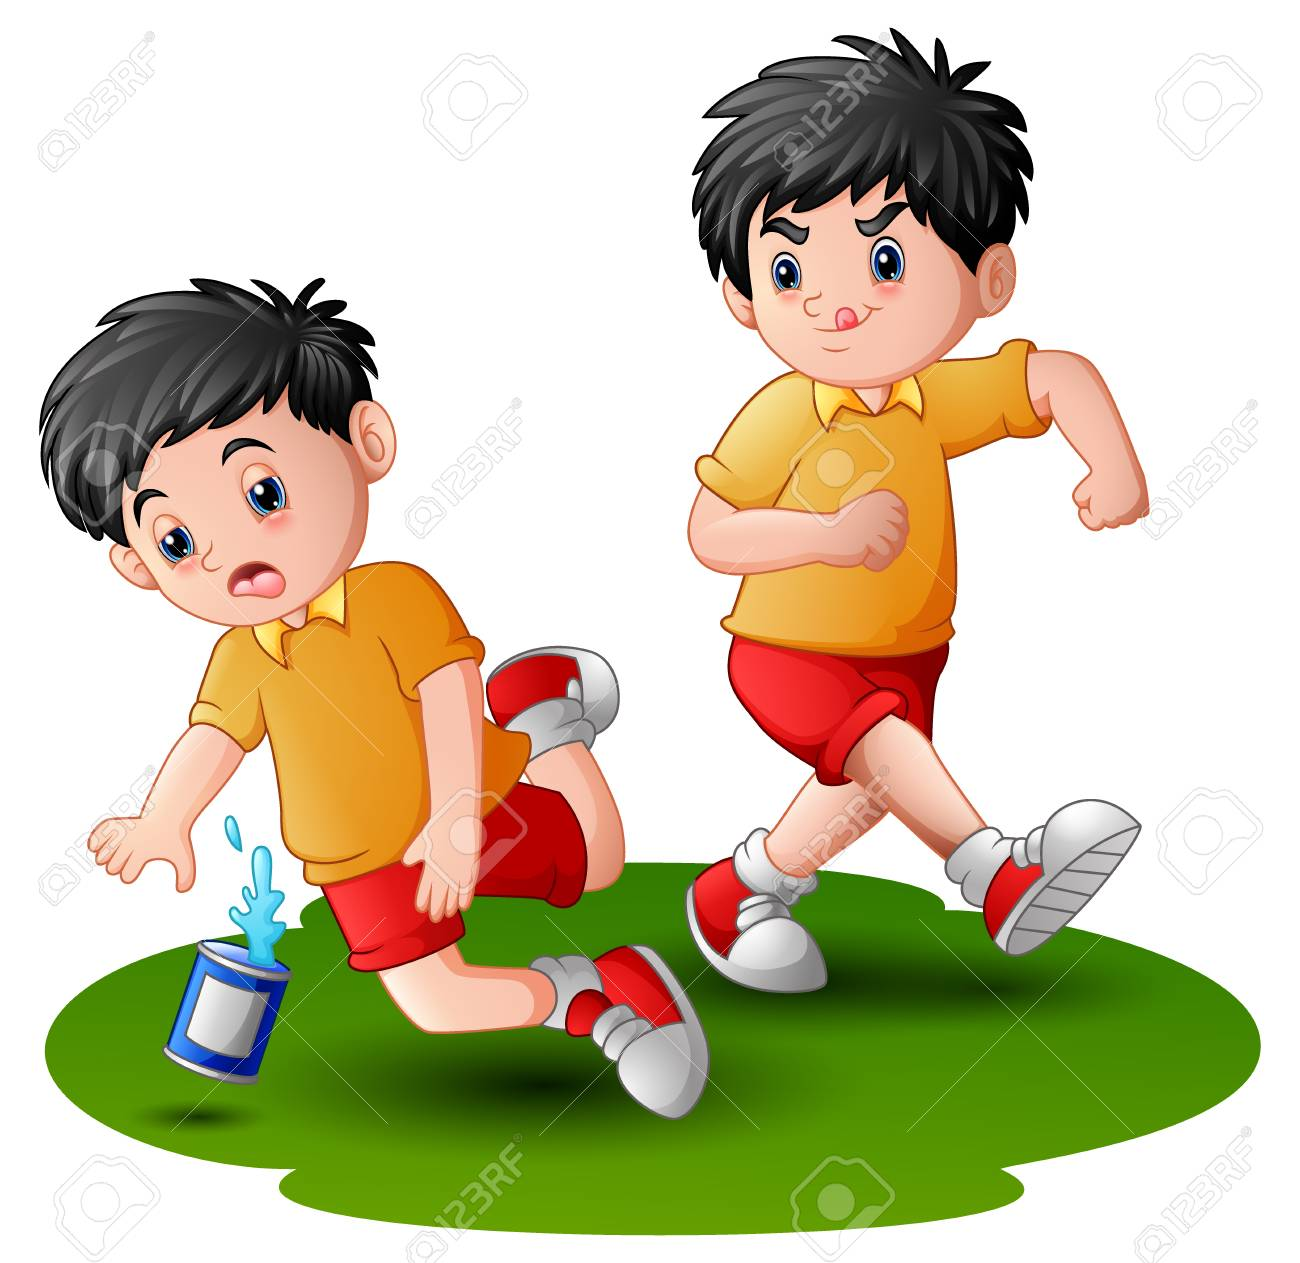 cartoon boy kicking others kid leg stock photo, picture and royalty